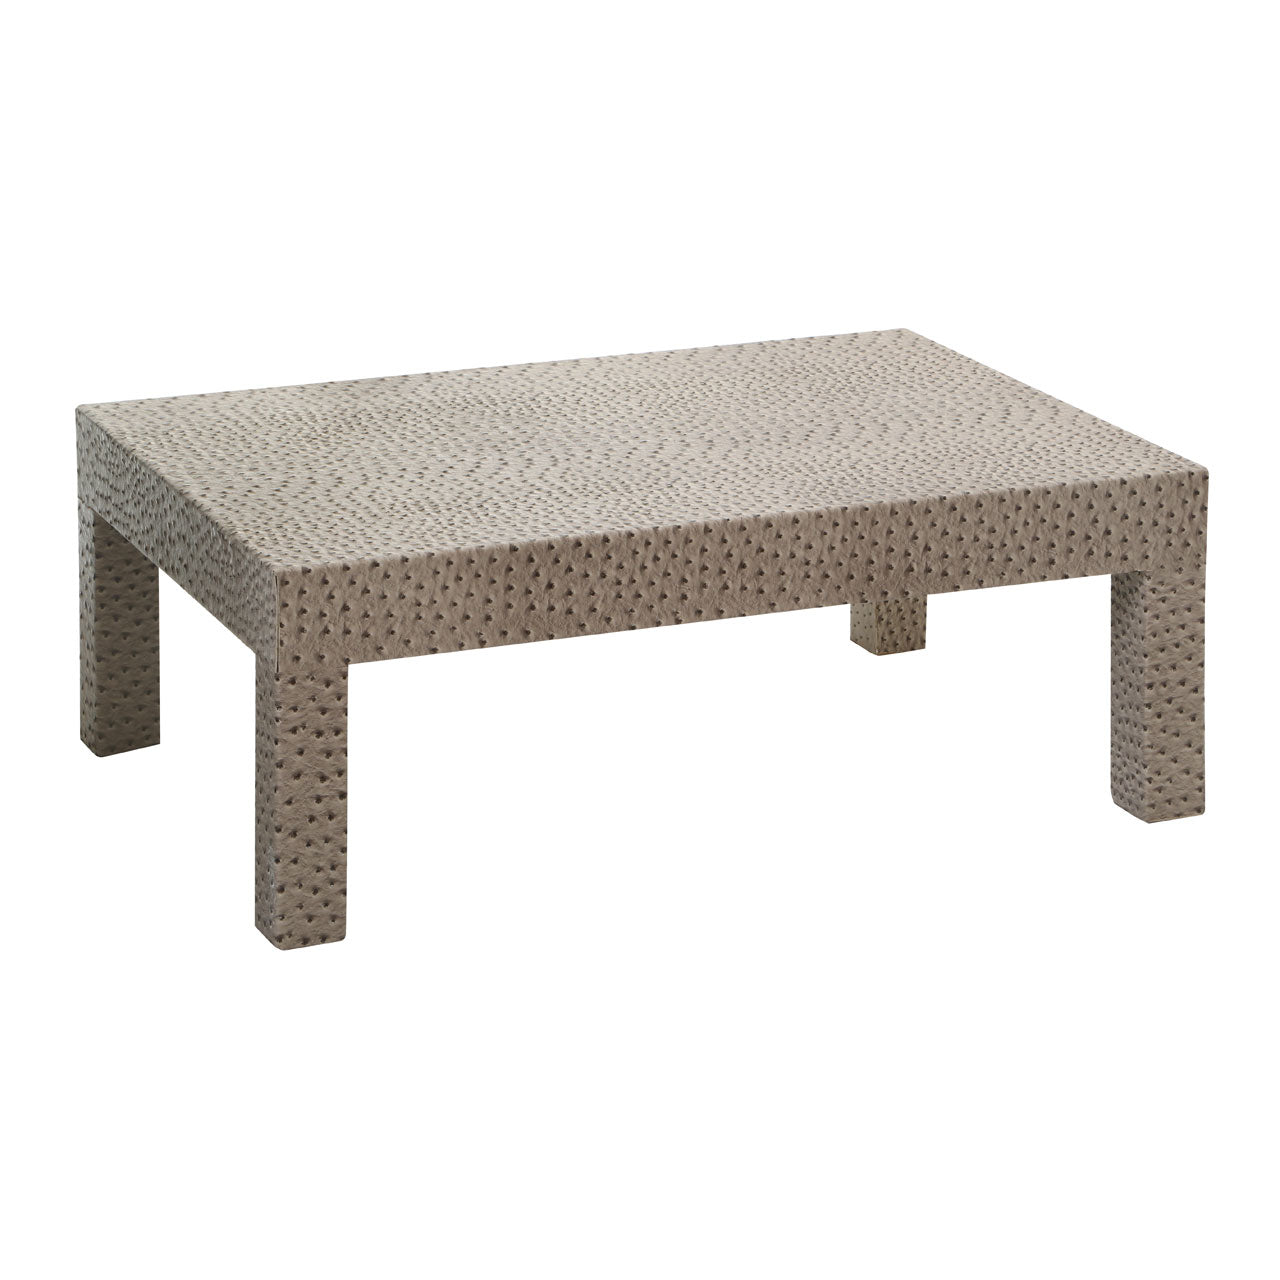 Coffee Table in Ostrich Leather Effect - Ezzo